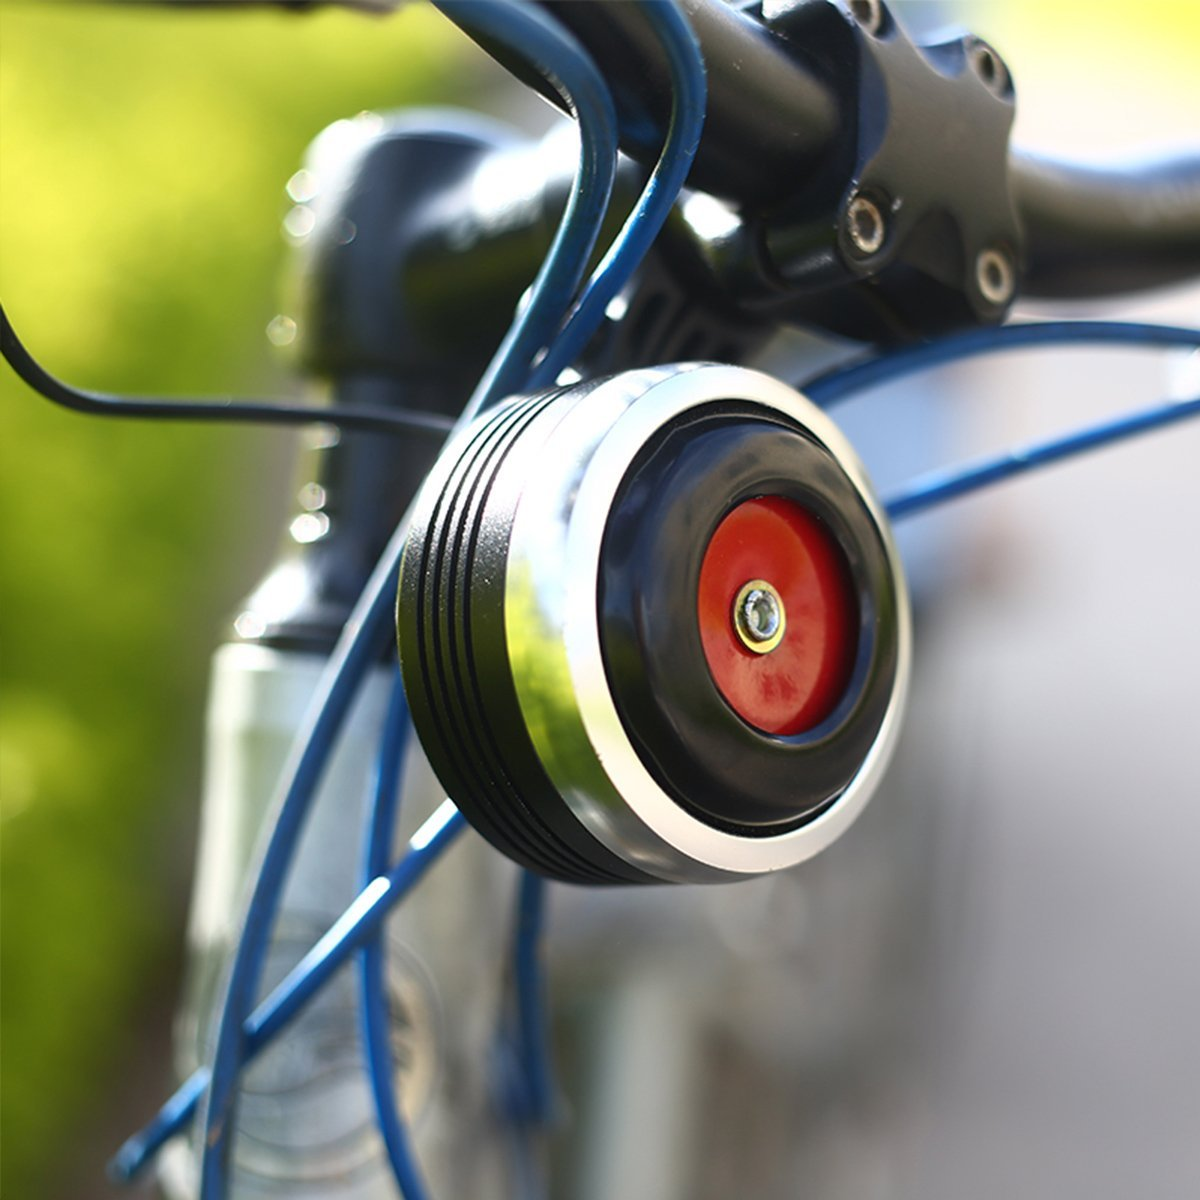 Bicycle Horn And Alarm